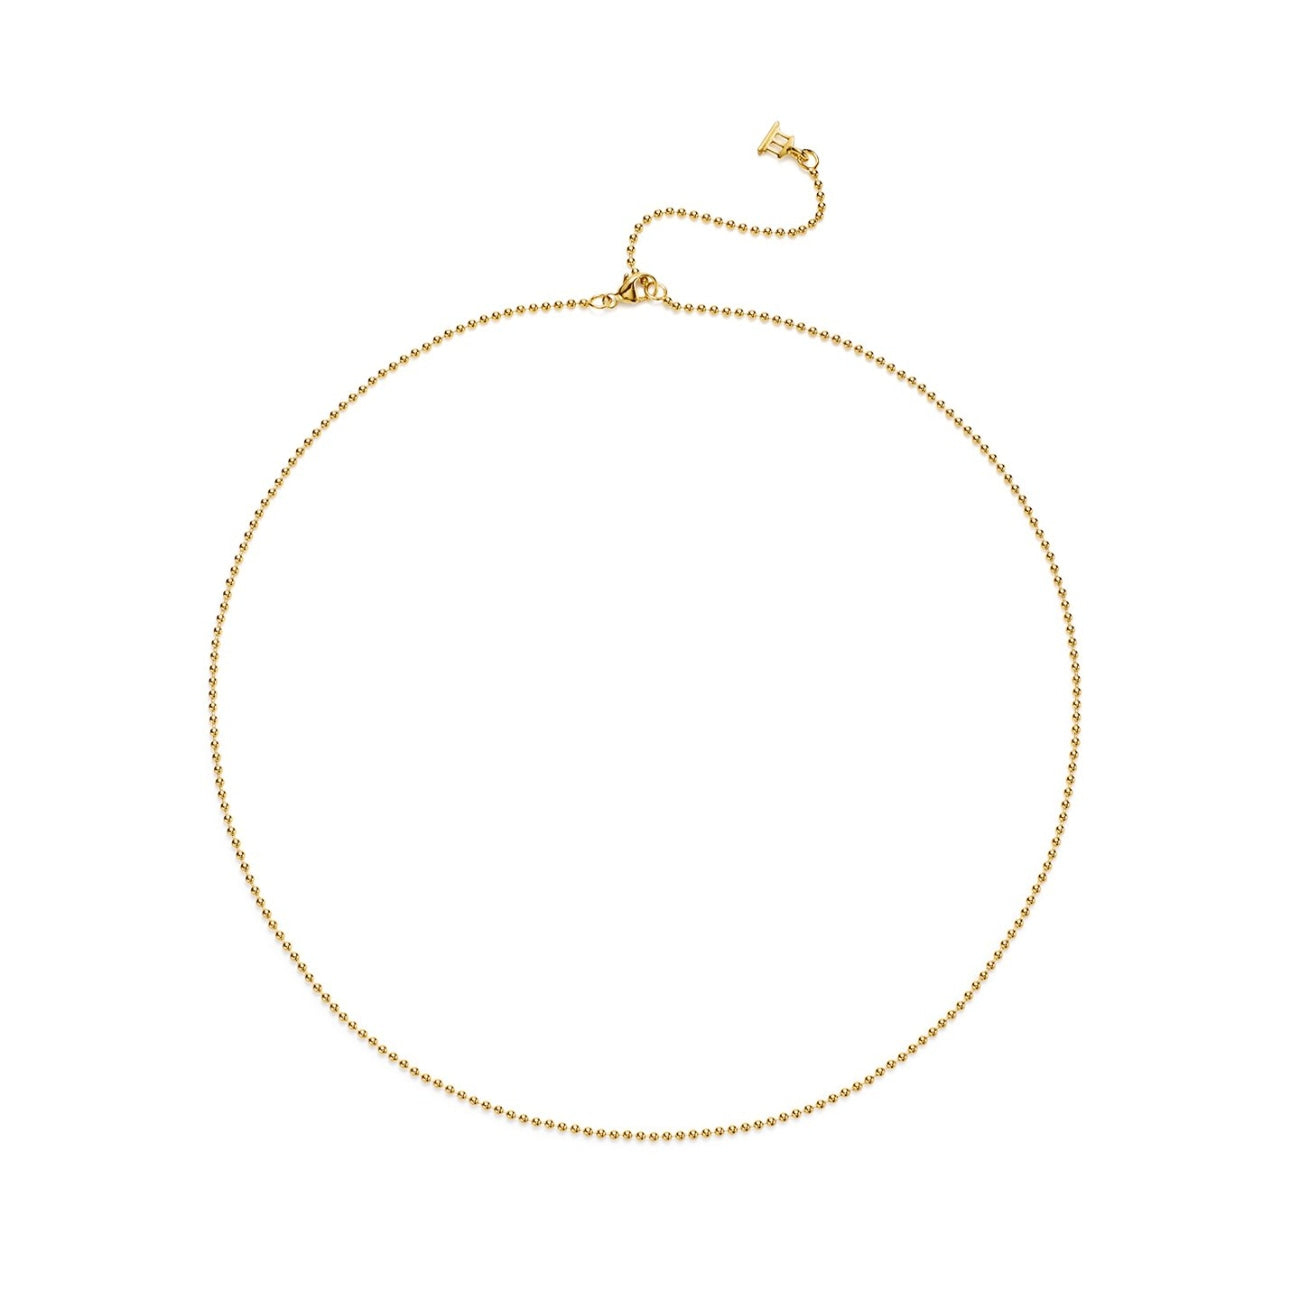 Temple St Clair Jewelry - 18K Ball Chain with 2 Extender | Manfredi Jewels